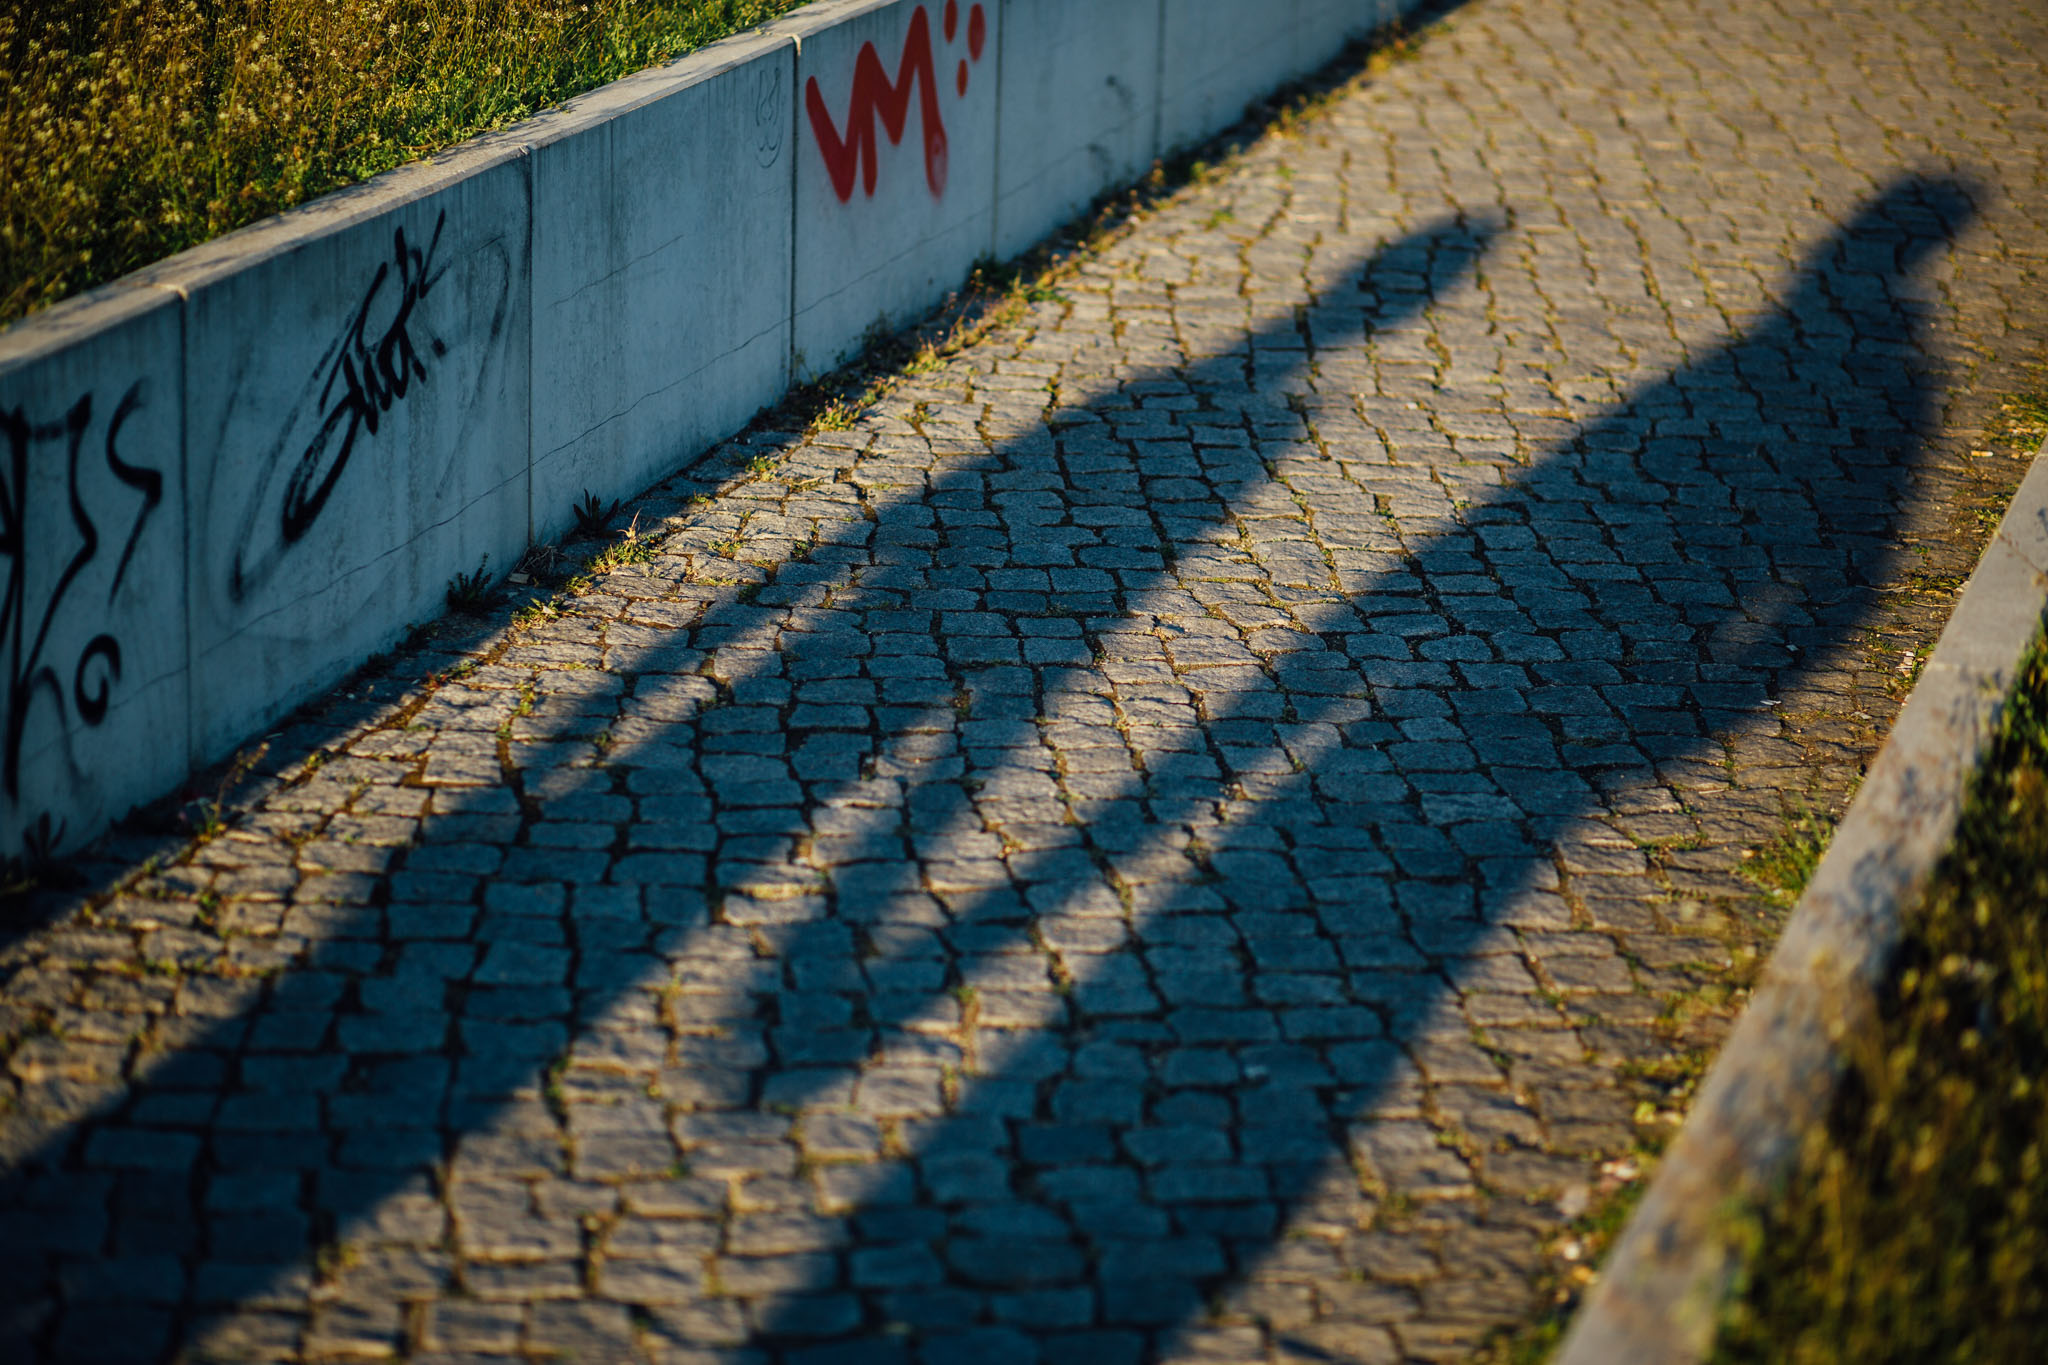 paarfotos-schatten-berlin-spree